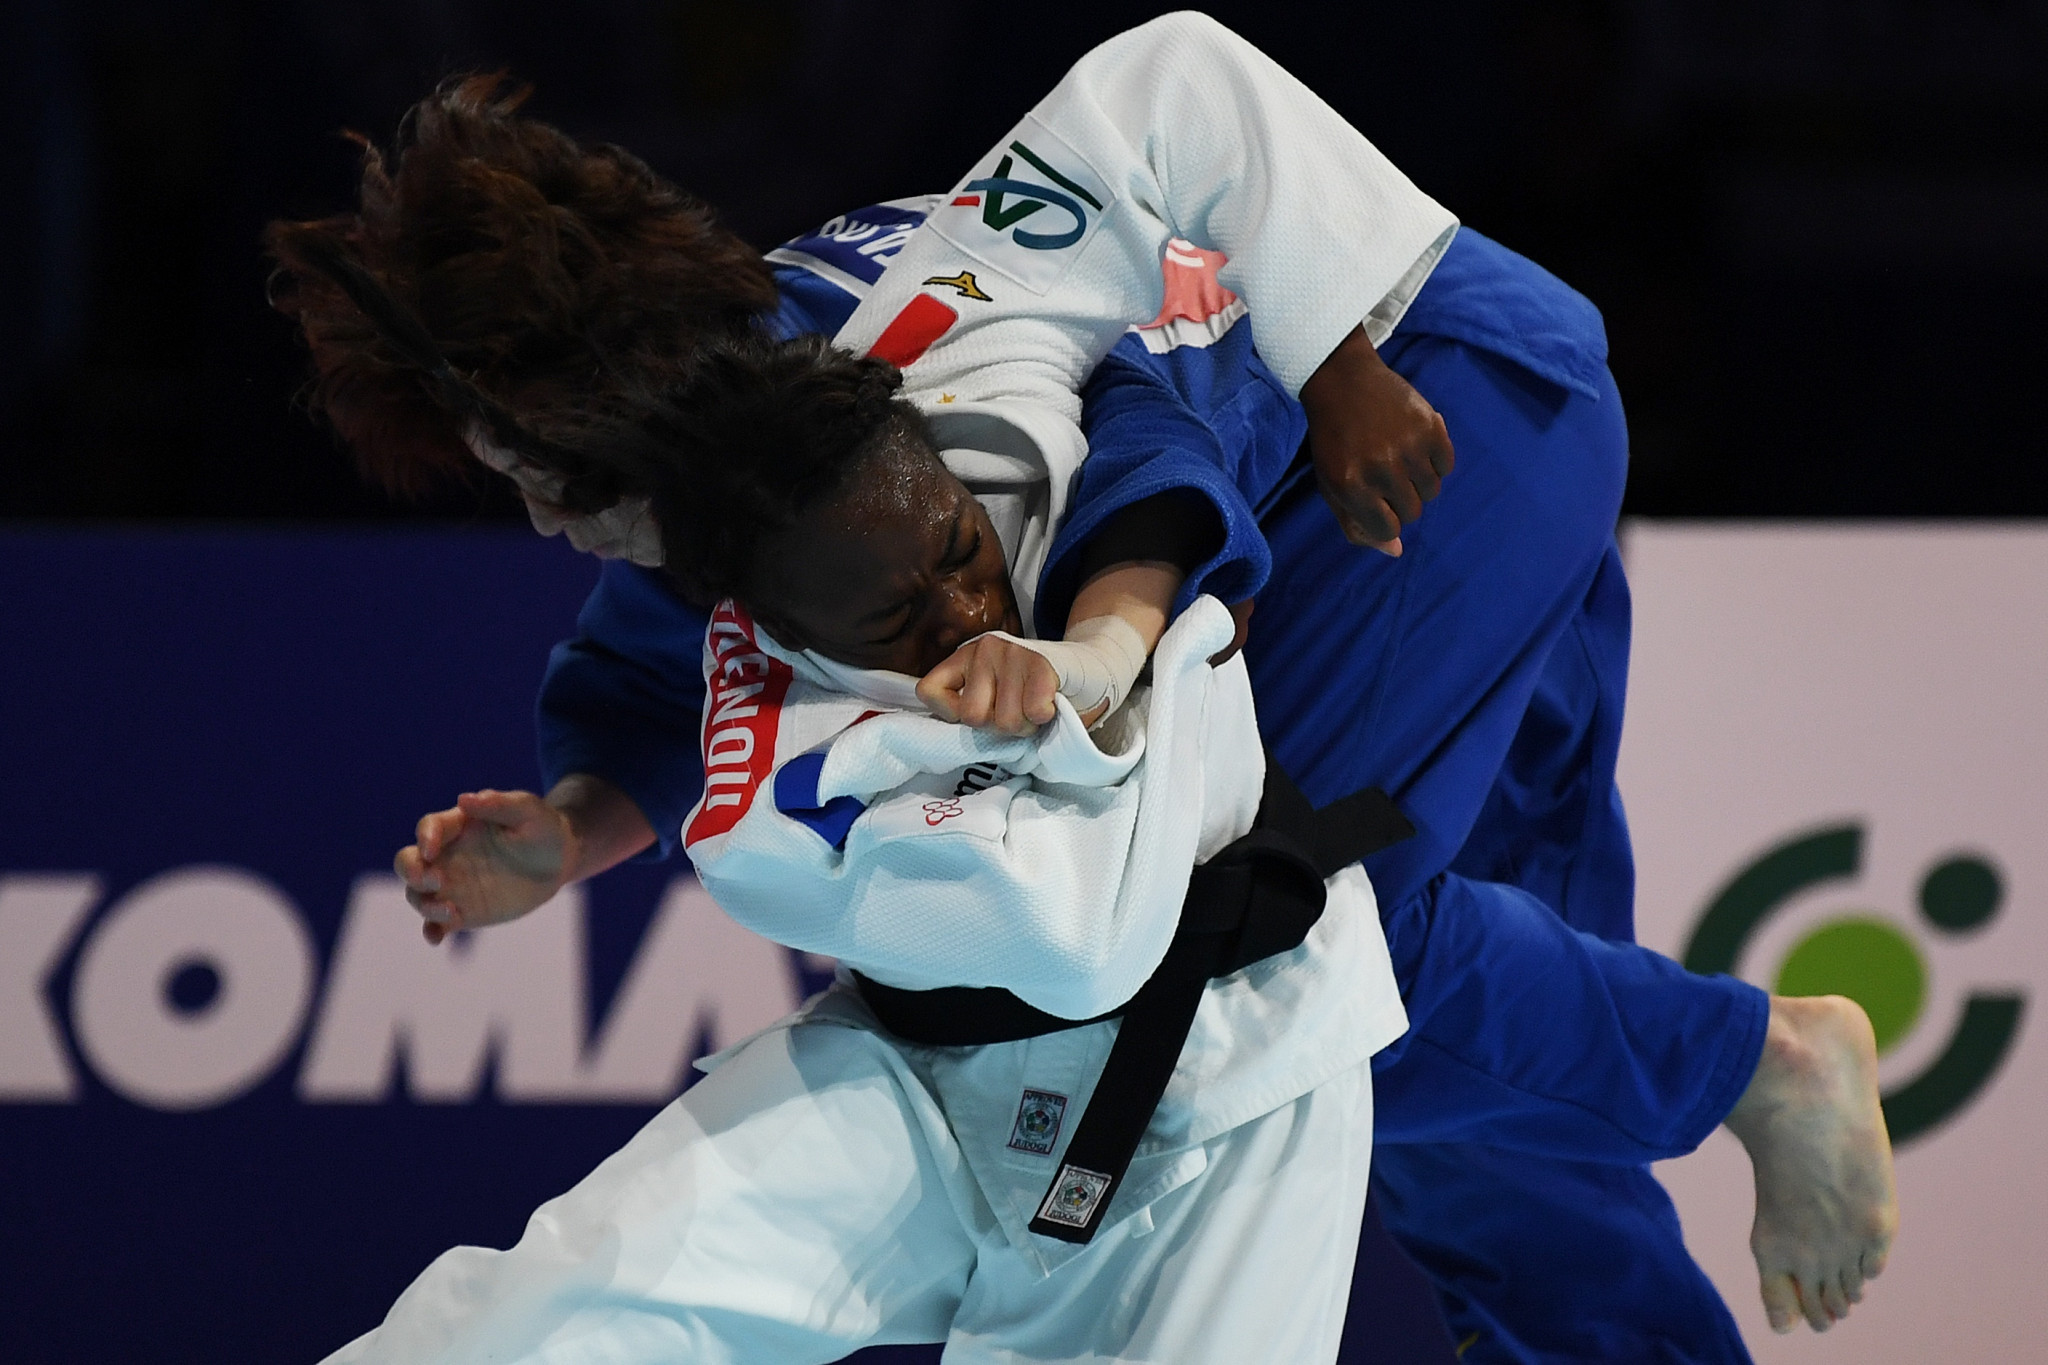 Agbegnenou and Toshiro fought for more than 10 minutes before the Frenchwoman finally triumphed ©Getty Images